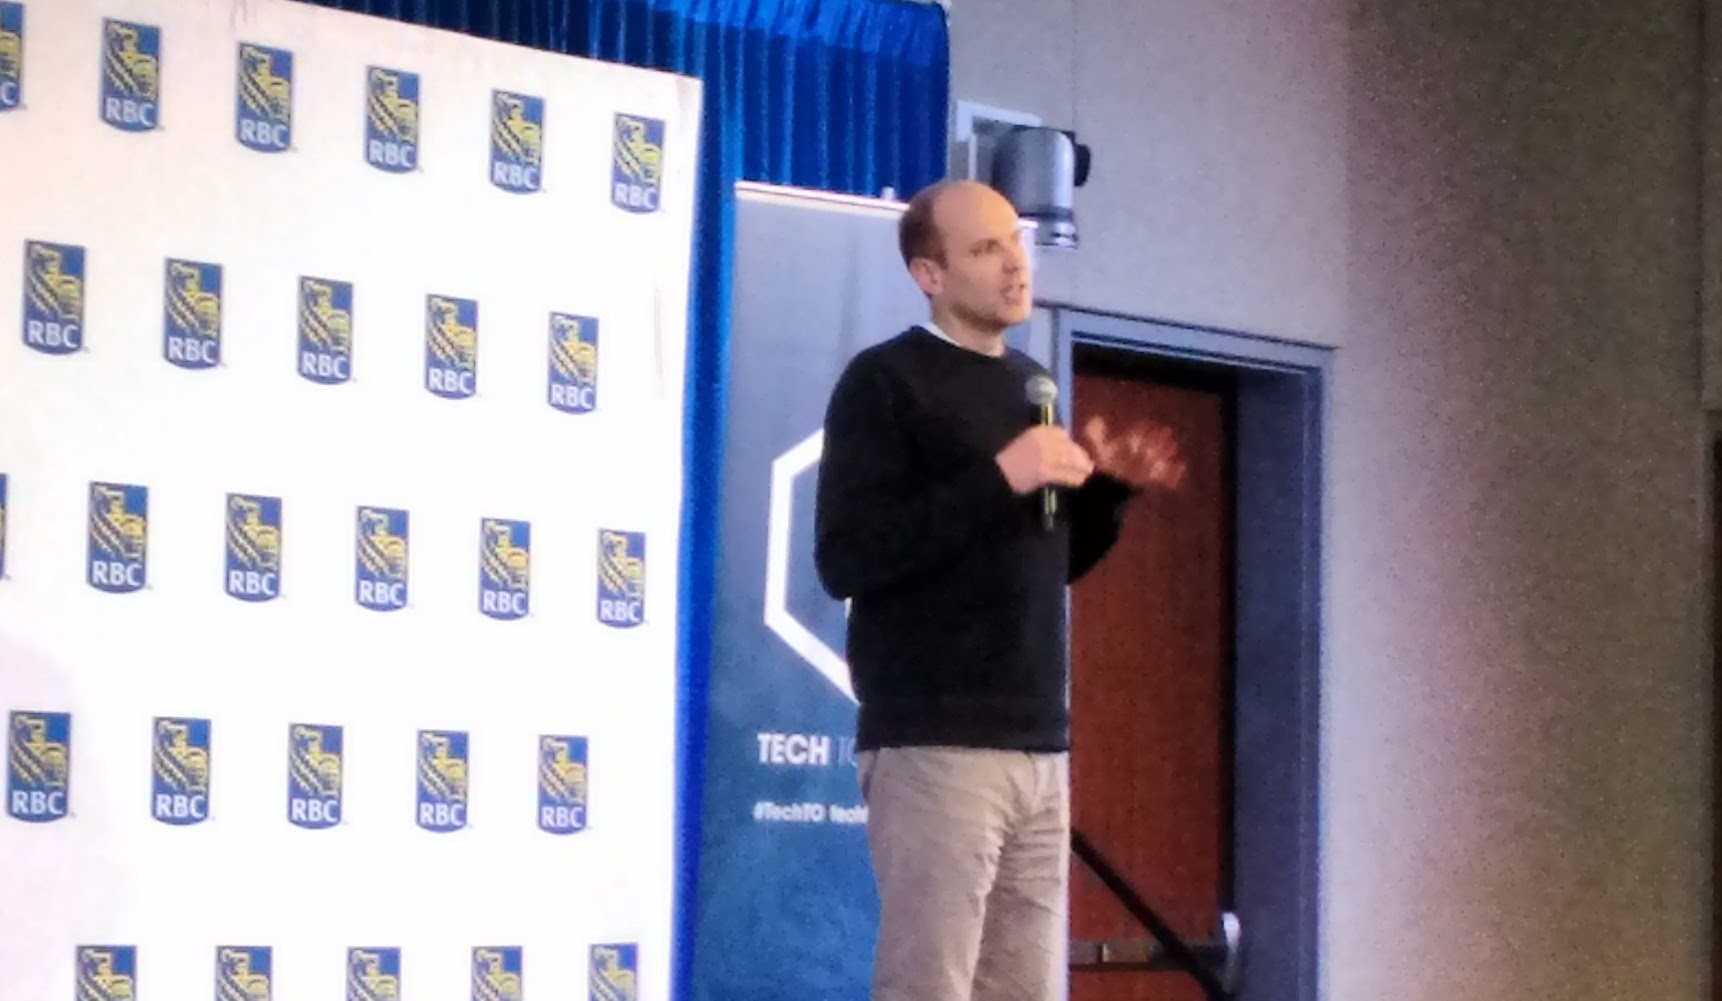 Mike McDerment - FreshBooks - TechTO